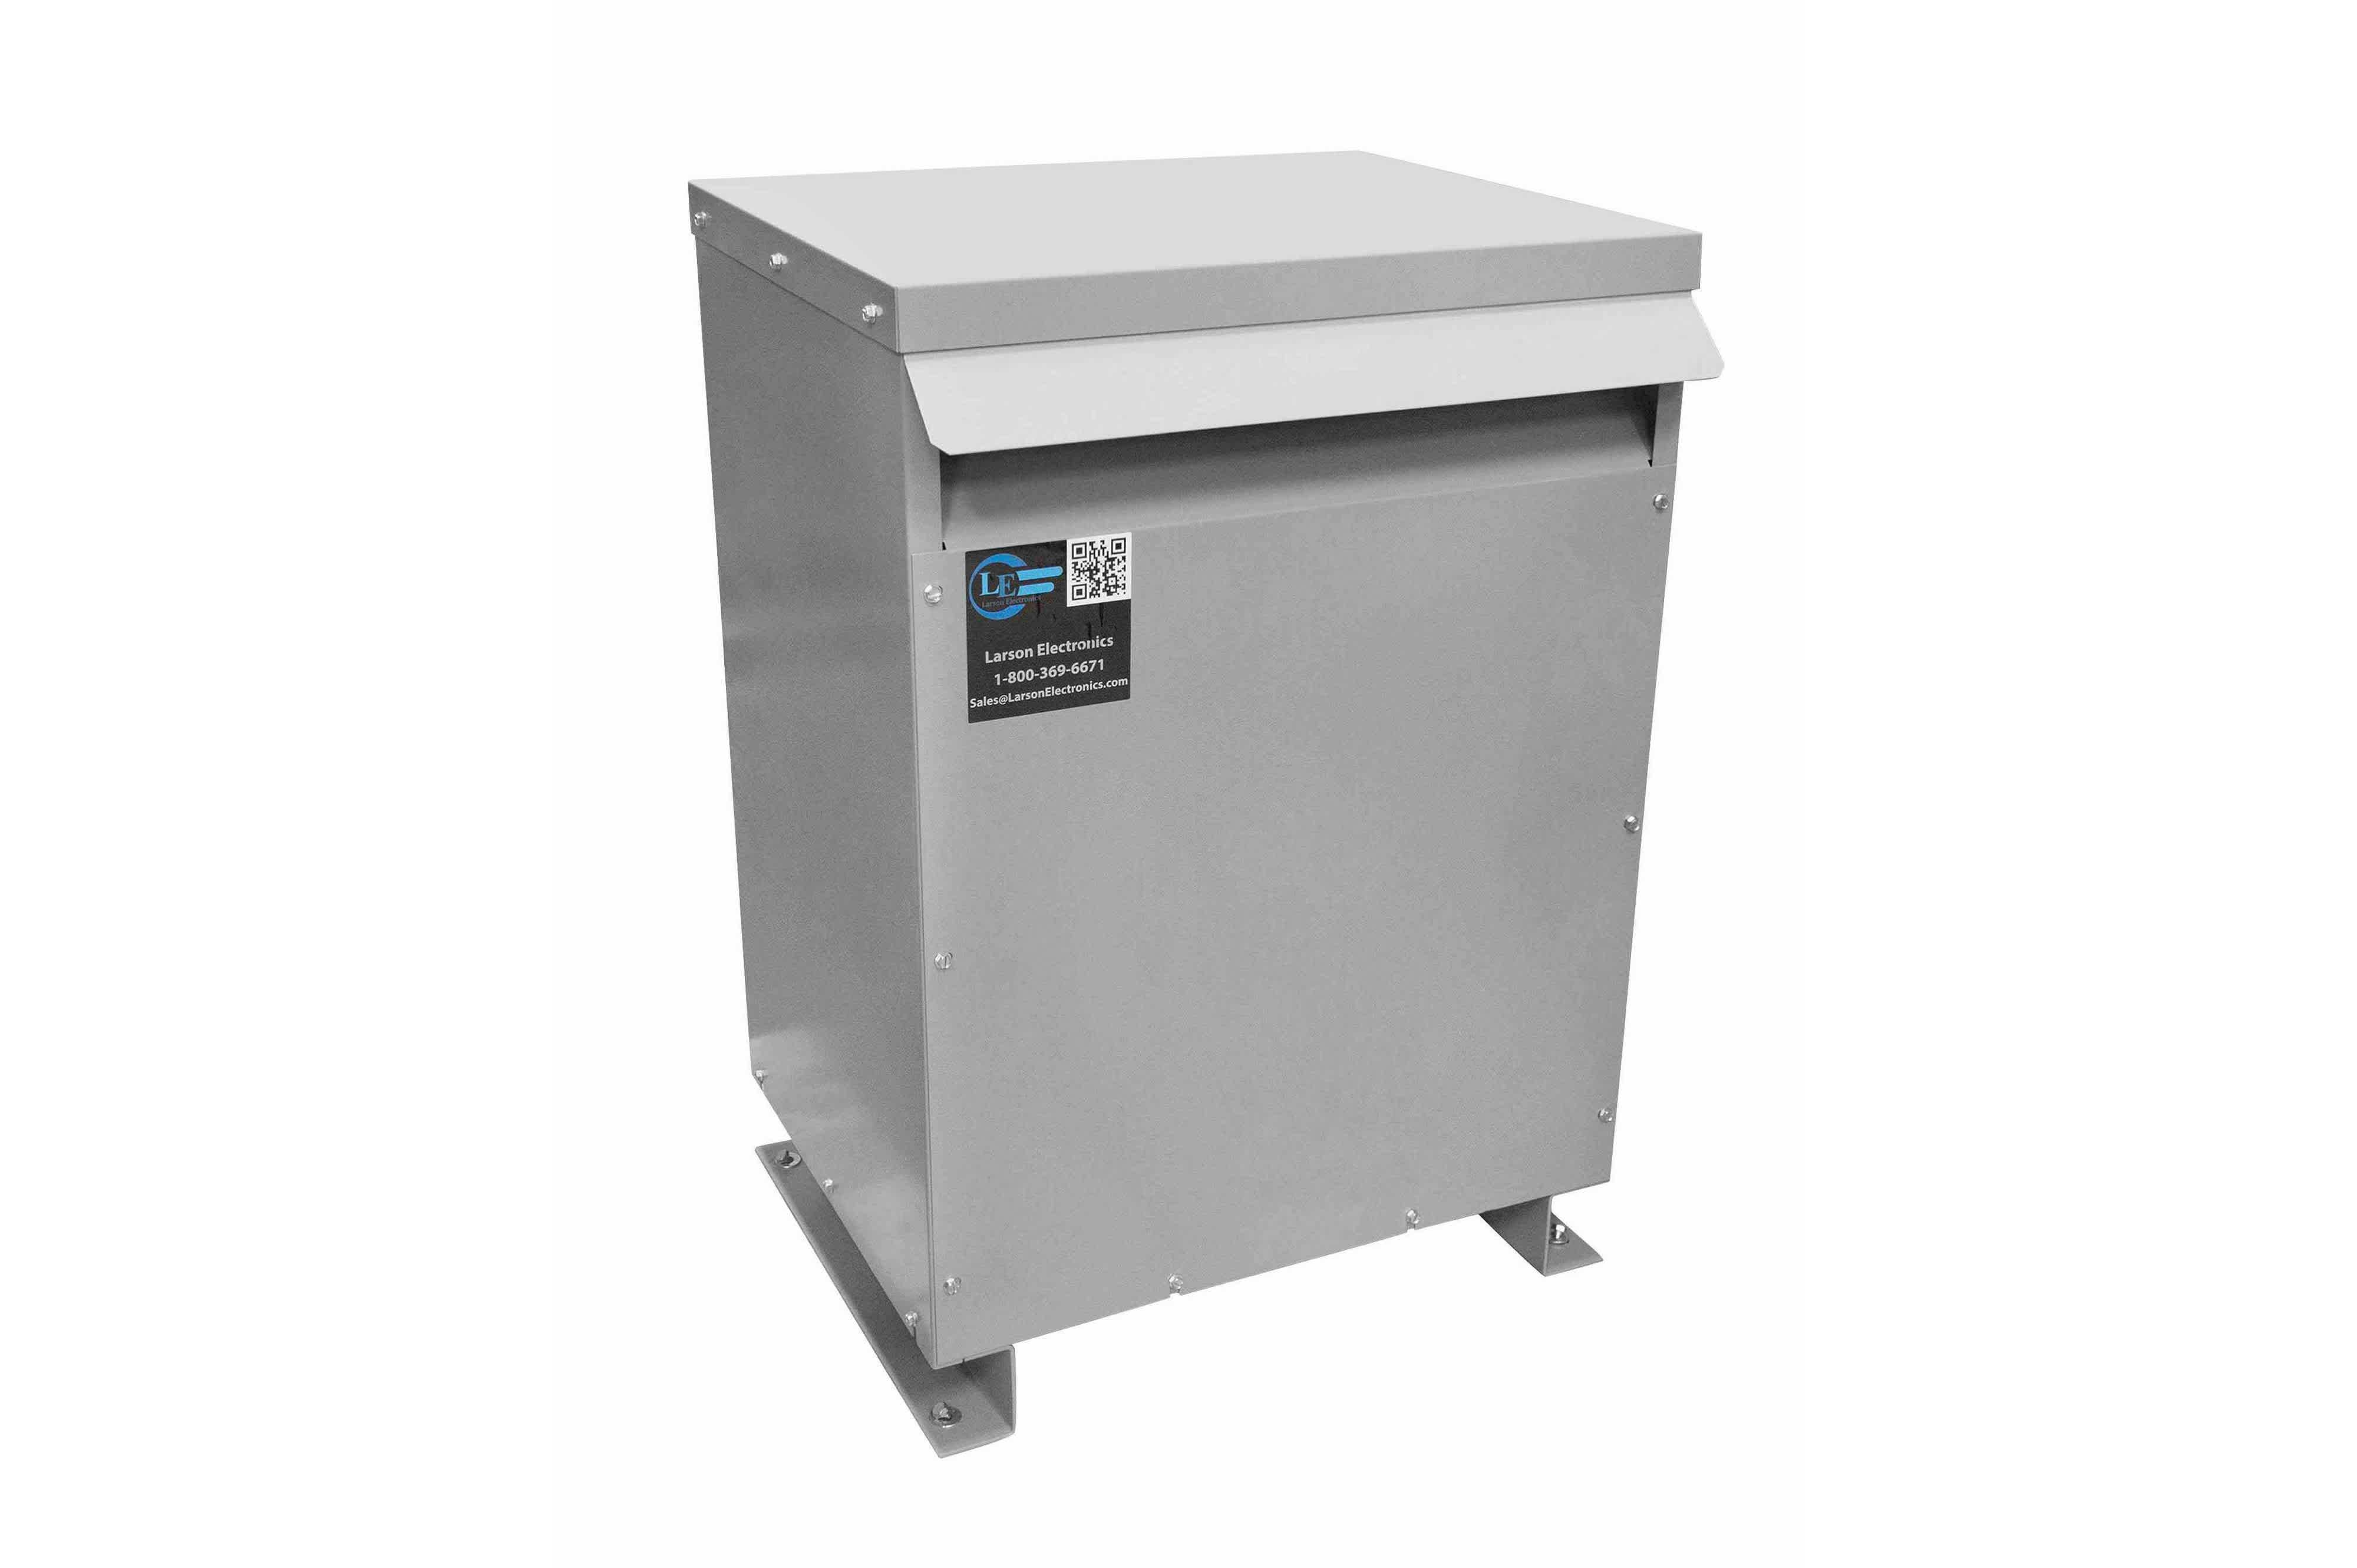 112.5 kVA 3PH Isolation Transformer, 460V Wye Primary, 400Y/231 Wye-N Secondary, N3R, Ventilated, 60 Hz